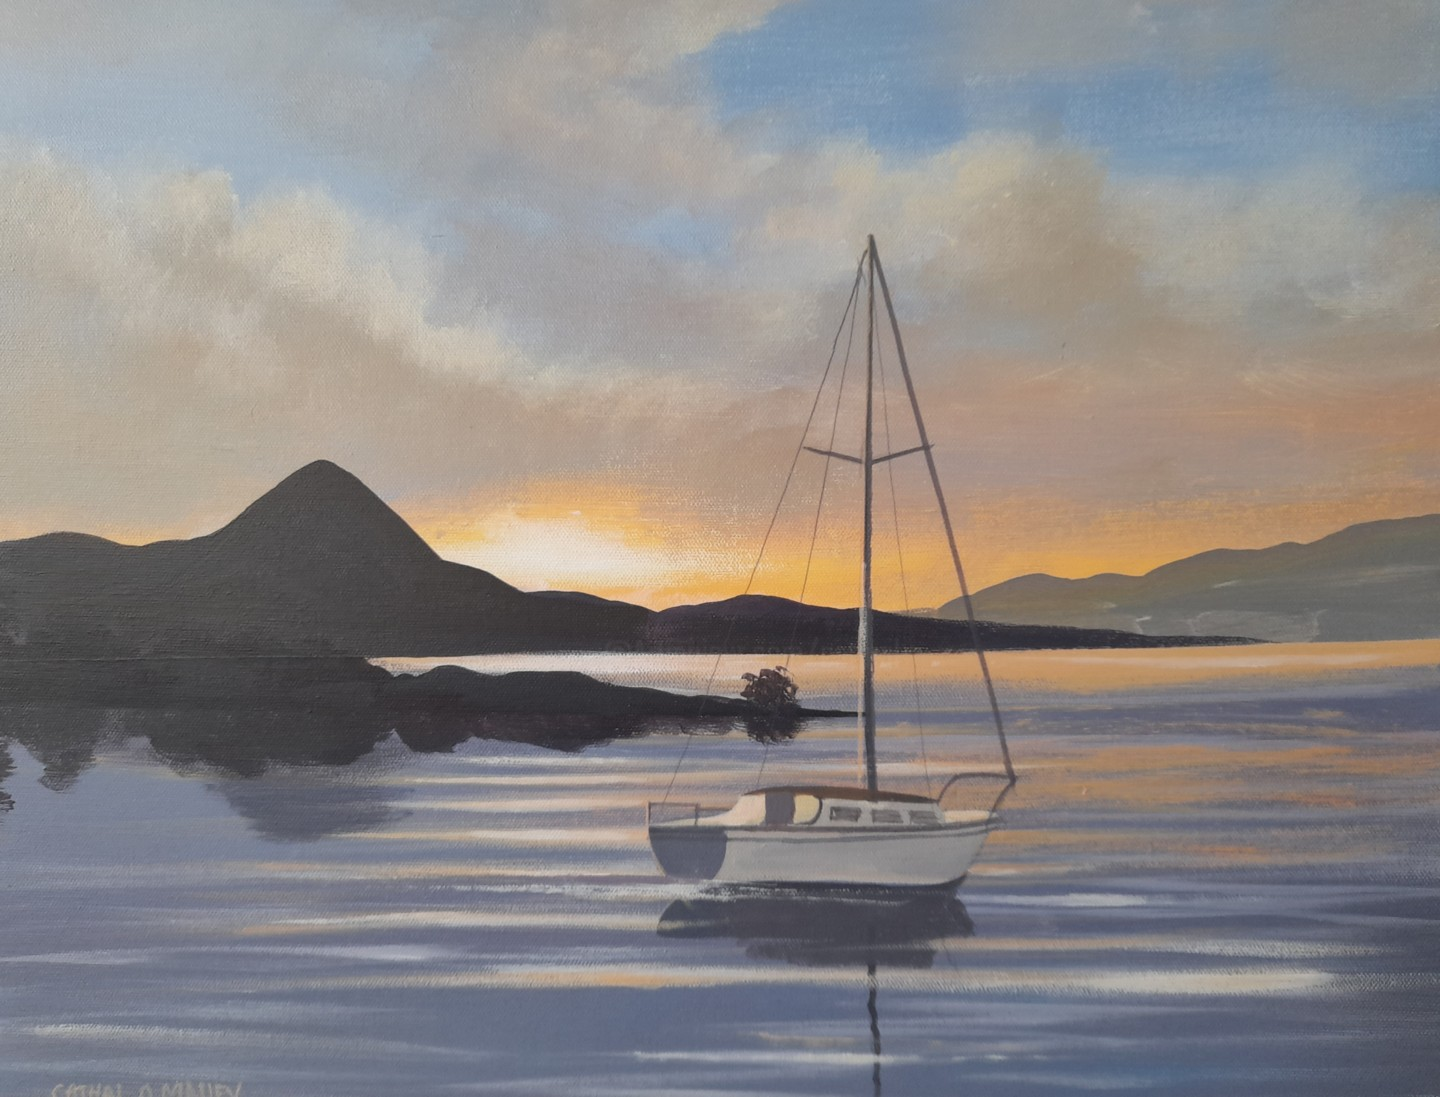 Cathal O Malley - Croagh patrick boat